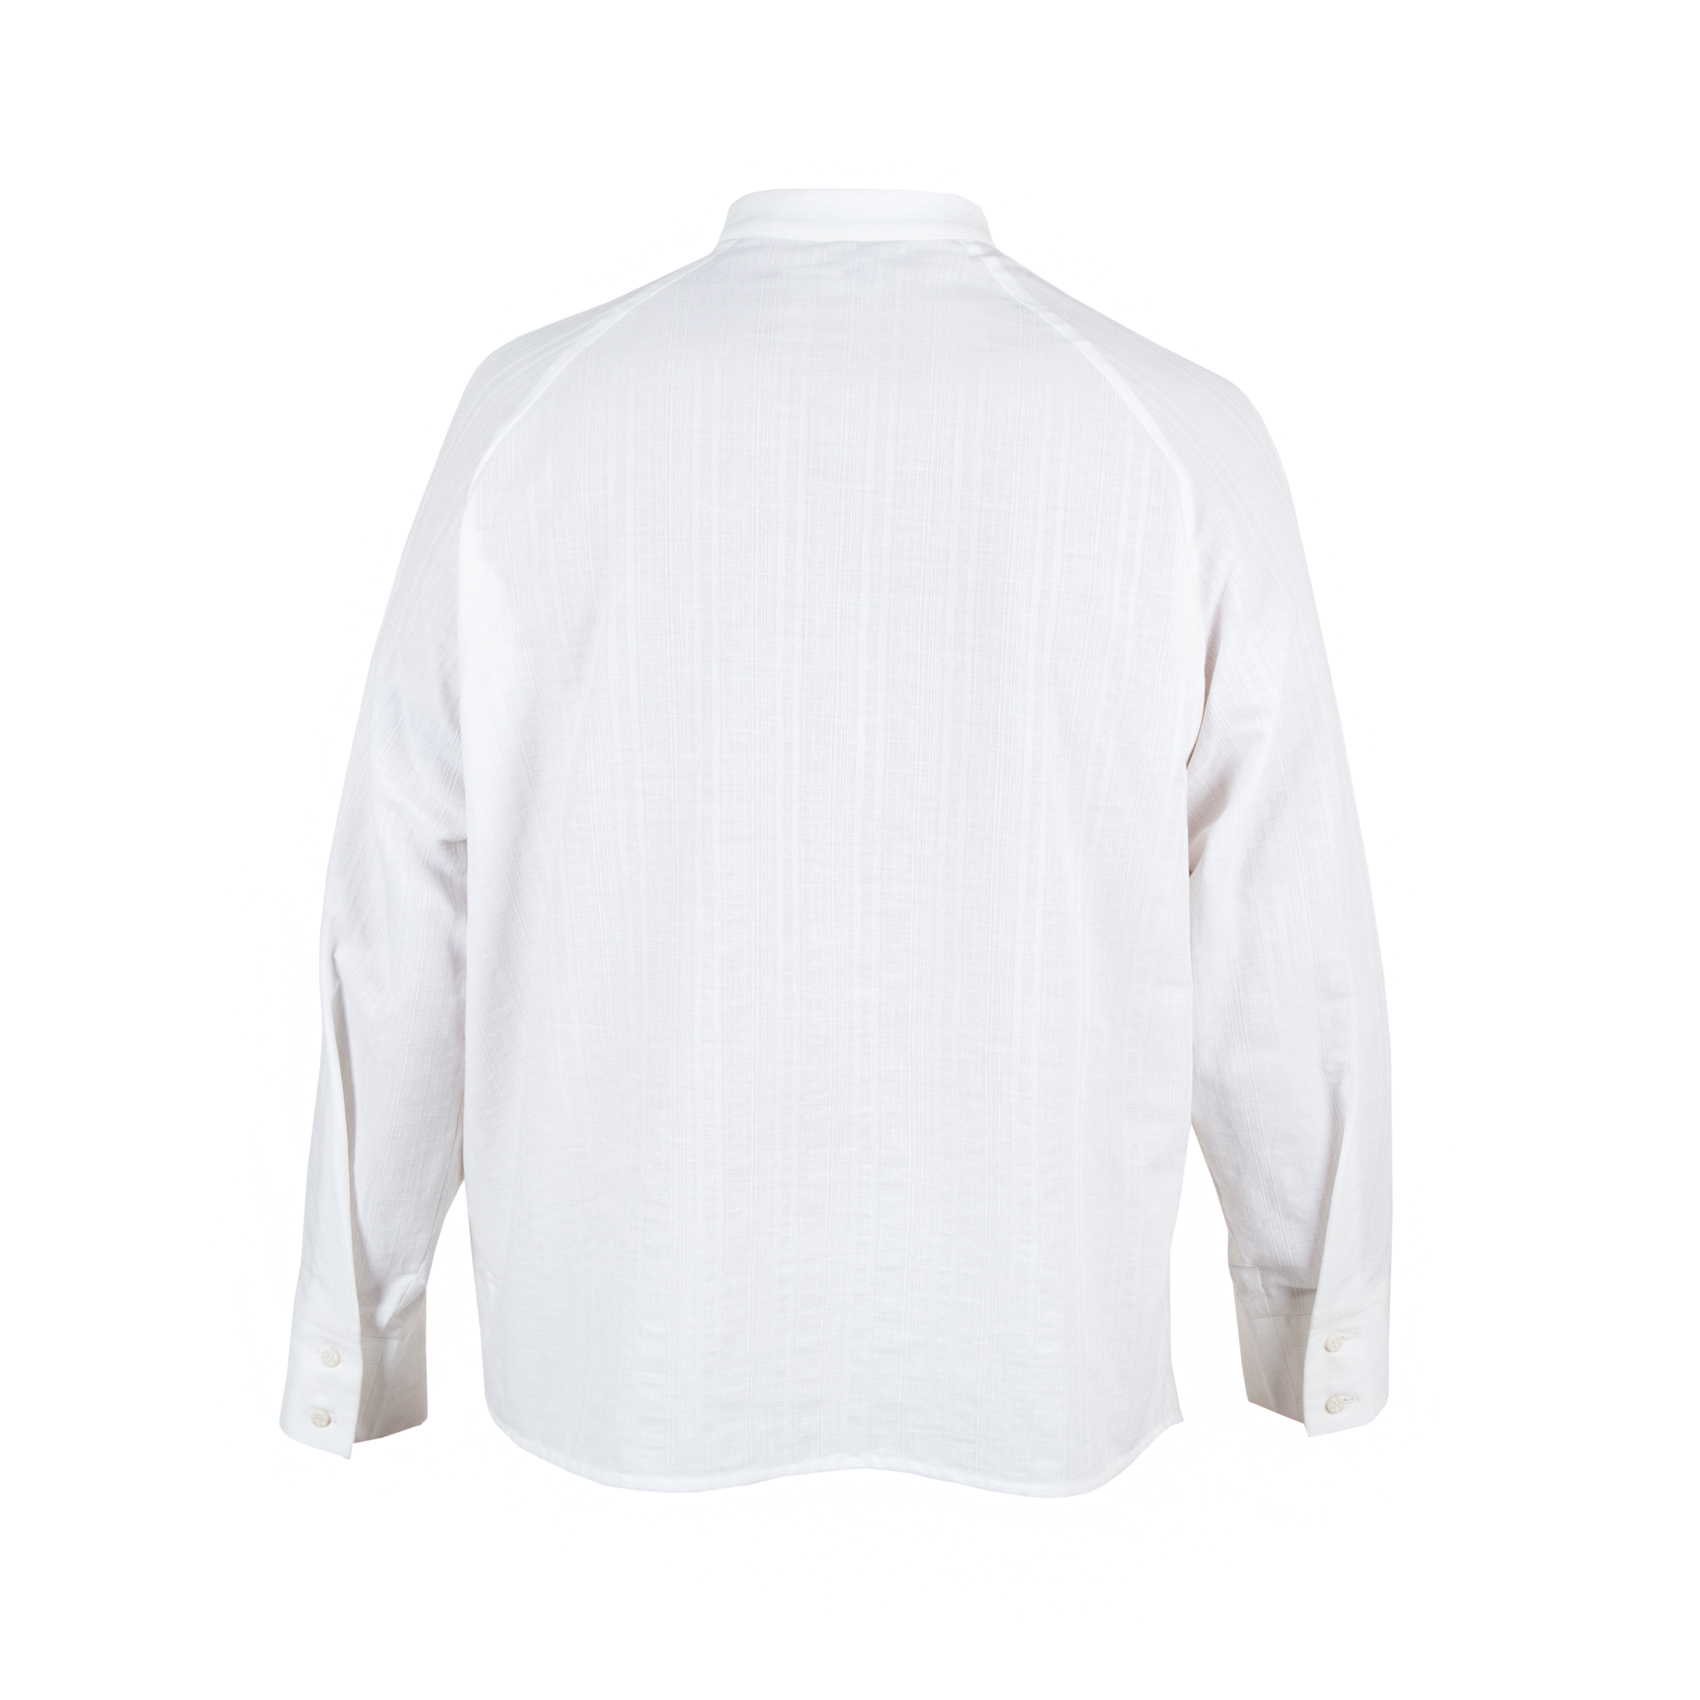 Picture of white long sleeve